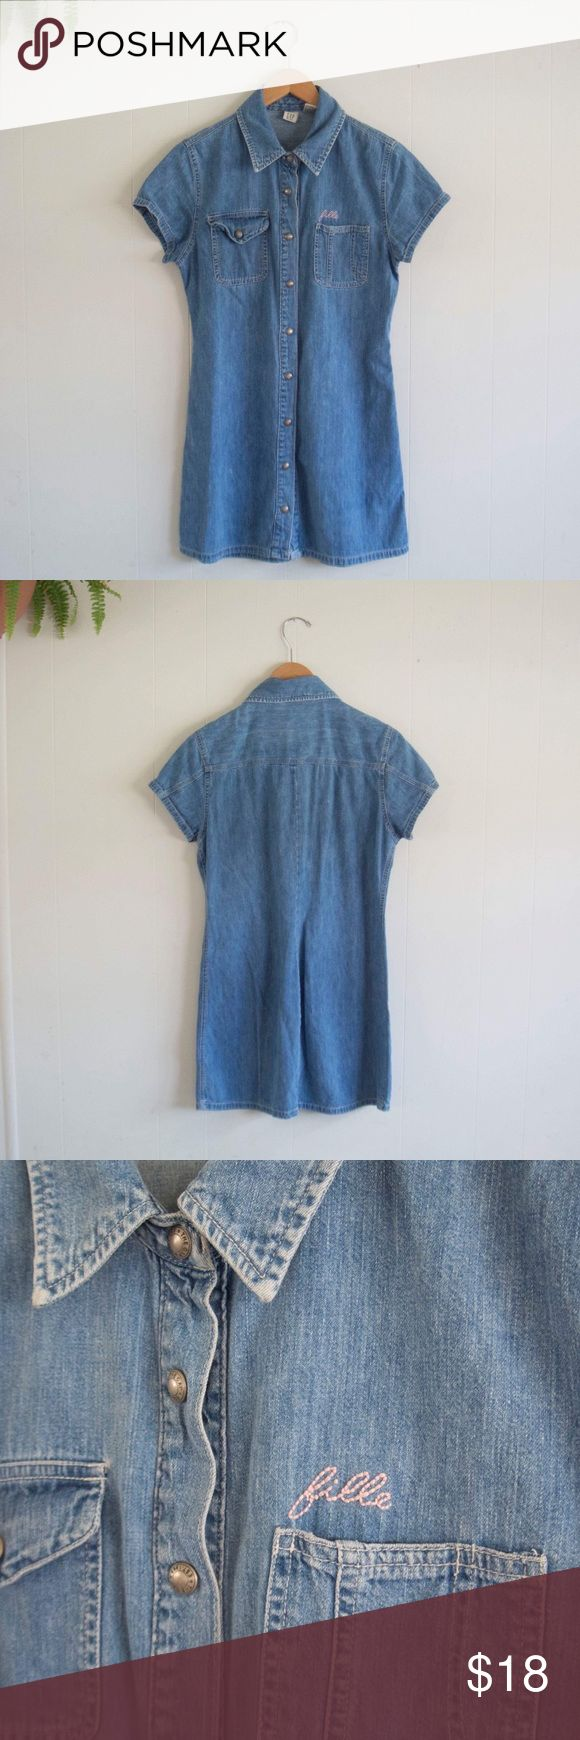 90s vintage GAP denim mini dress Super cute, worn about 3 times. I hand embroidered the word 'fille' (girl in French) above the pocket 🌸 Please ask any questions before purchasing! GAP Dresses Mini